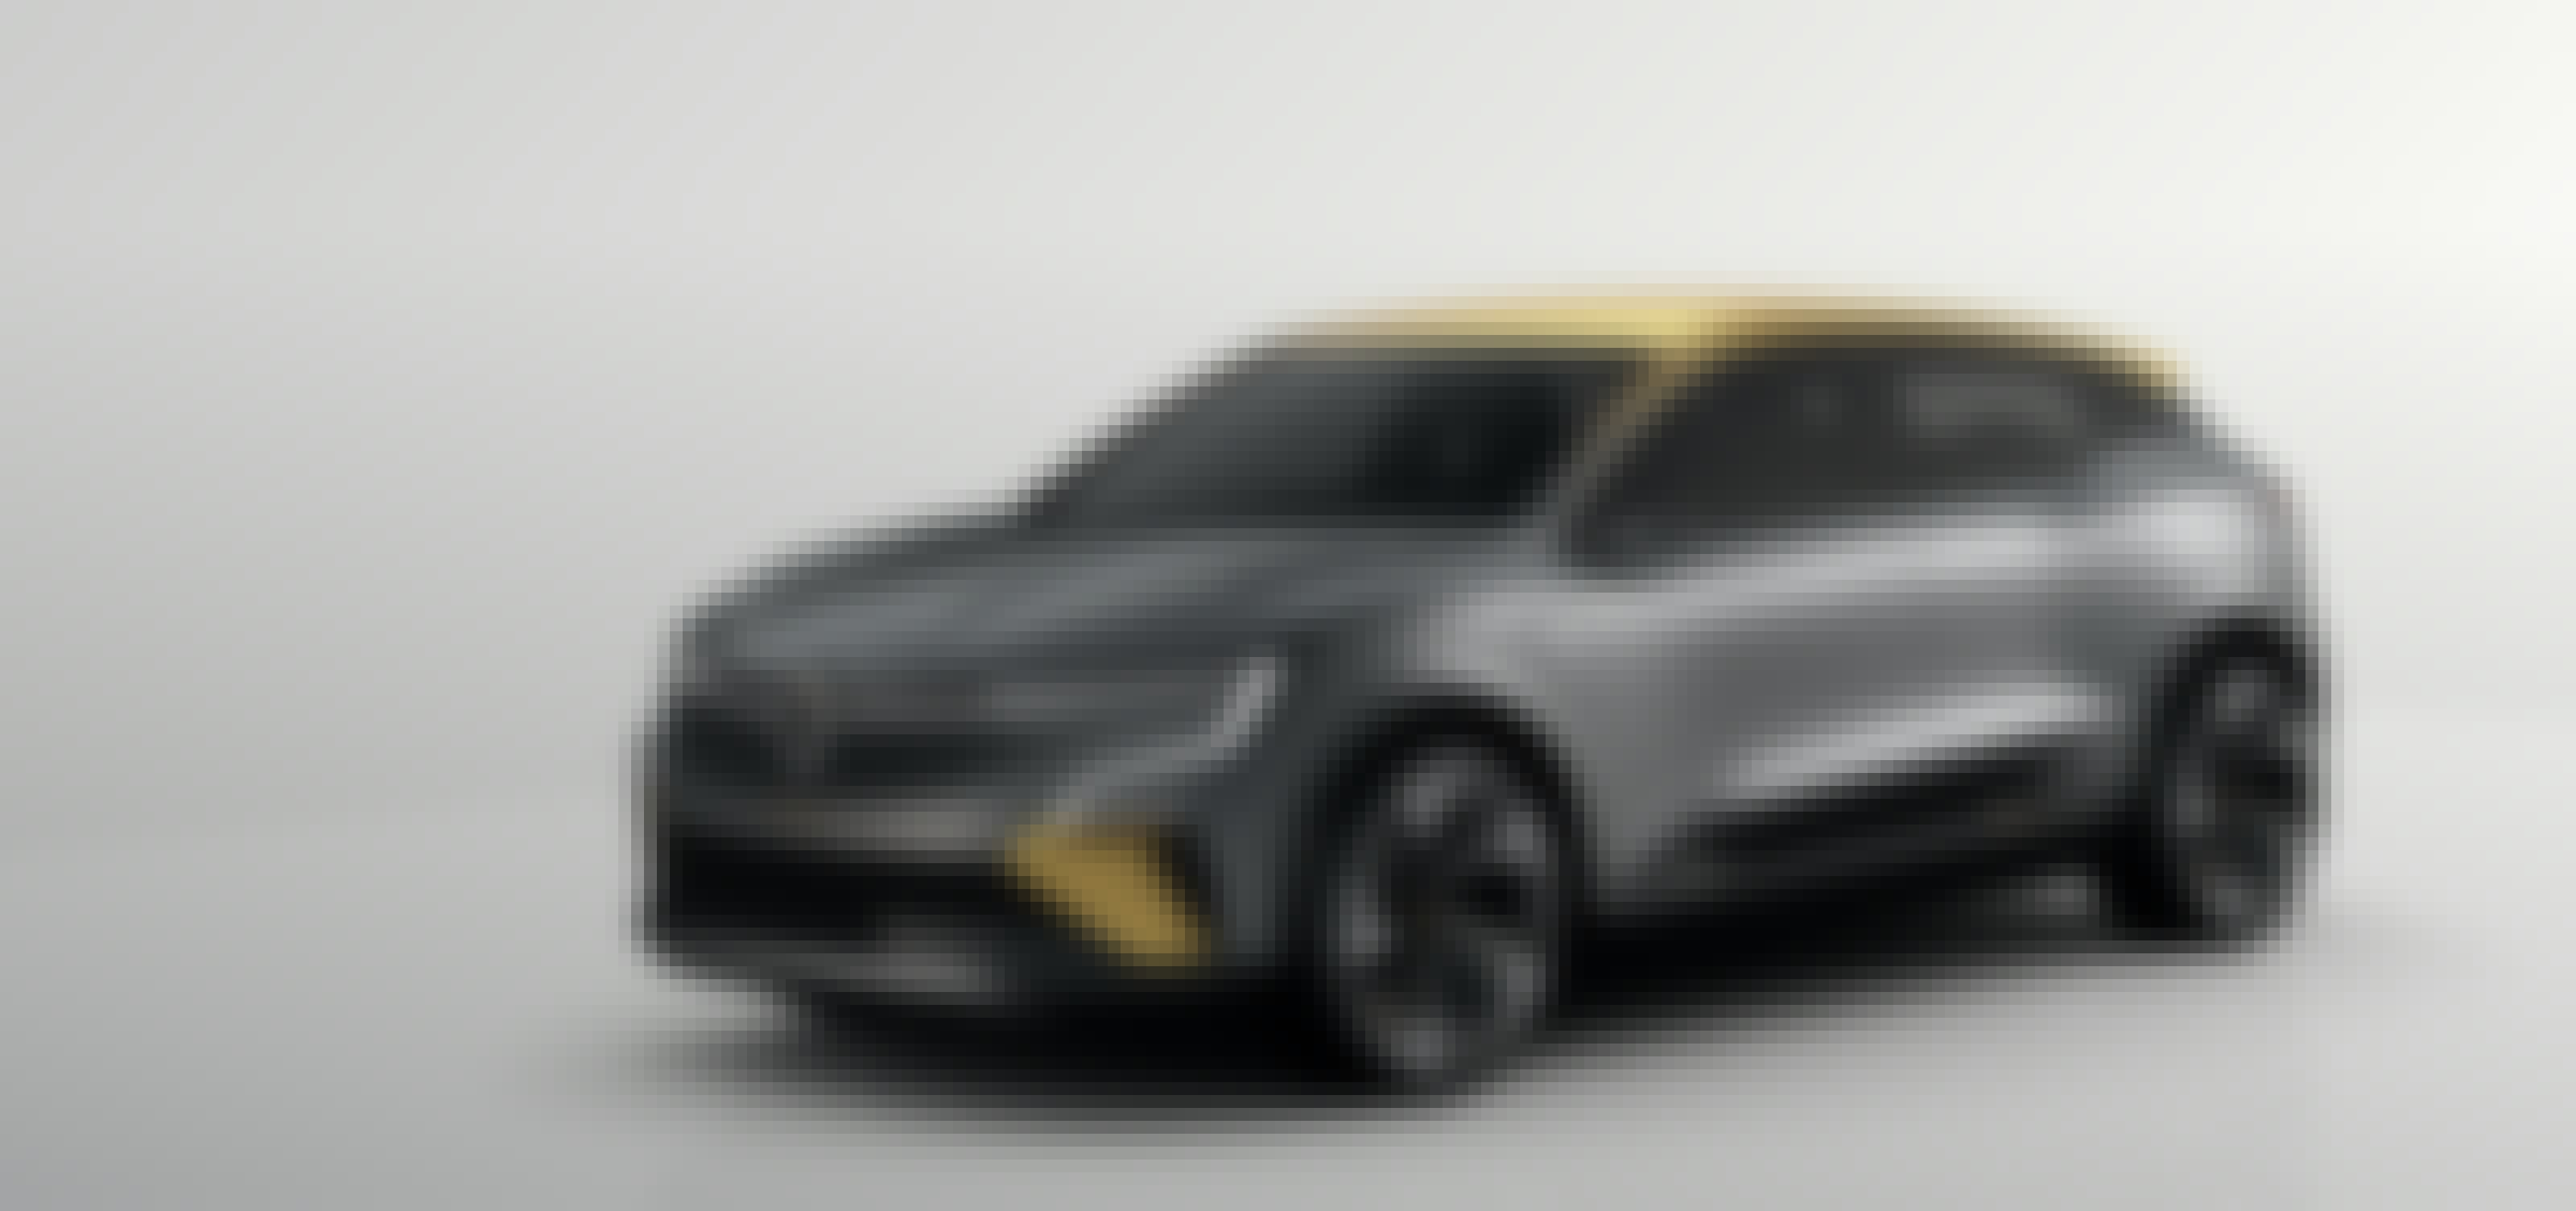 New Renault MEGANE eVISION electric concept car